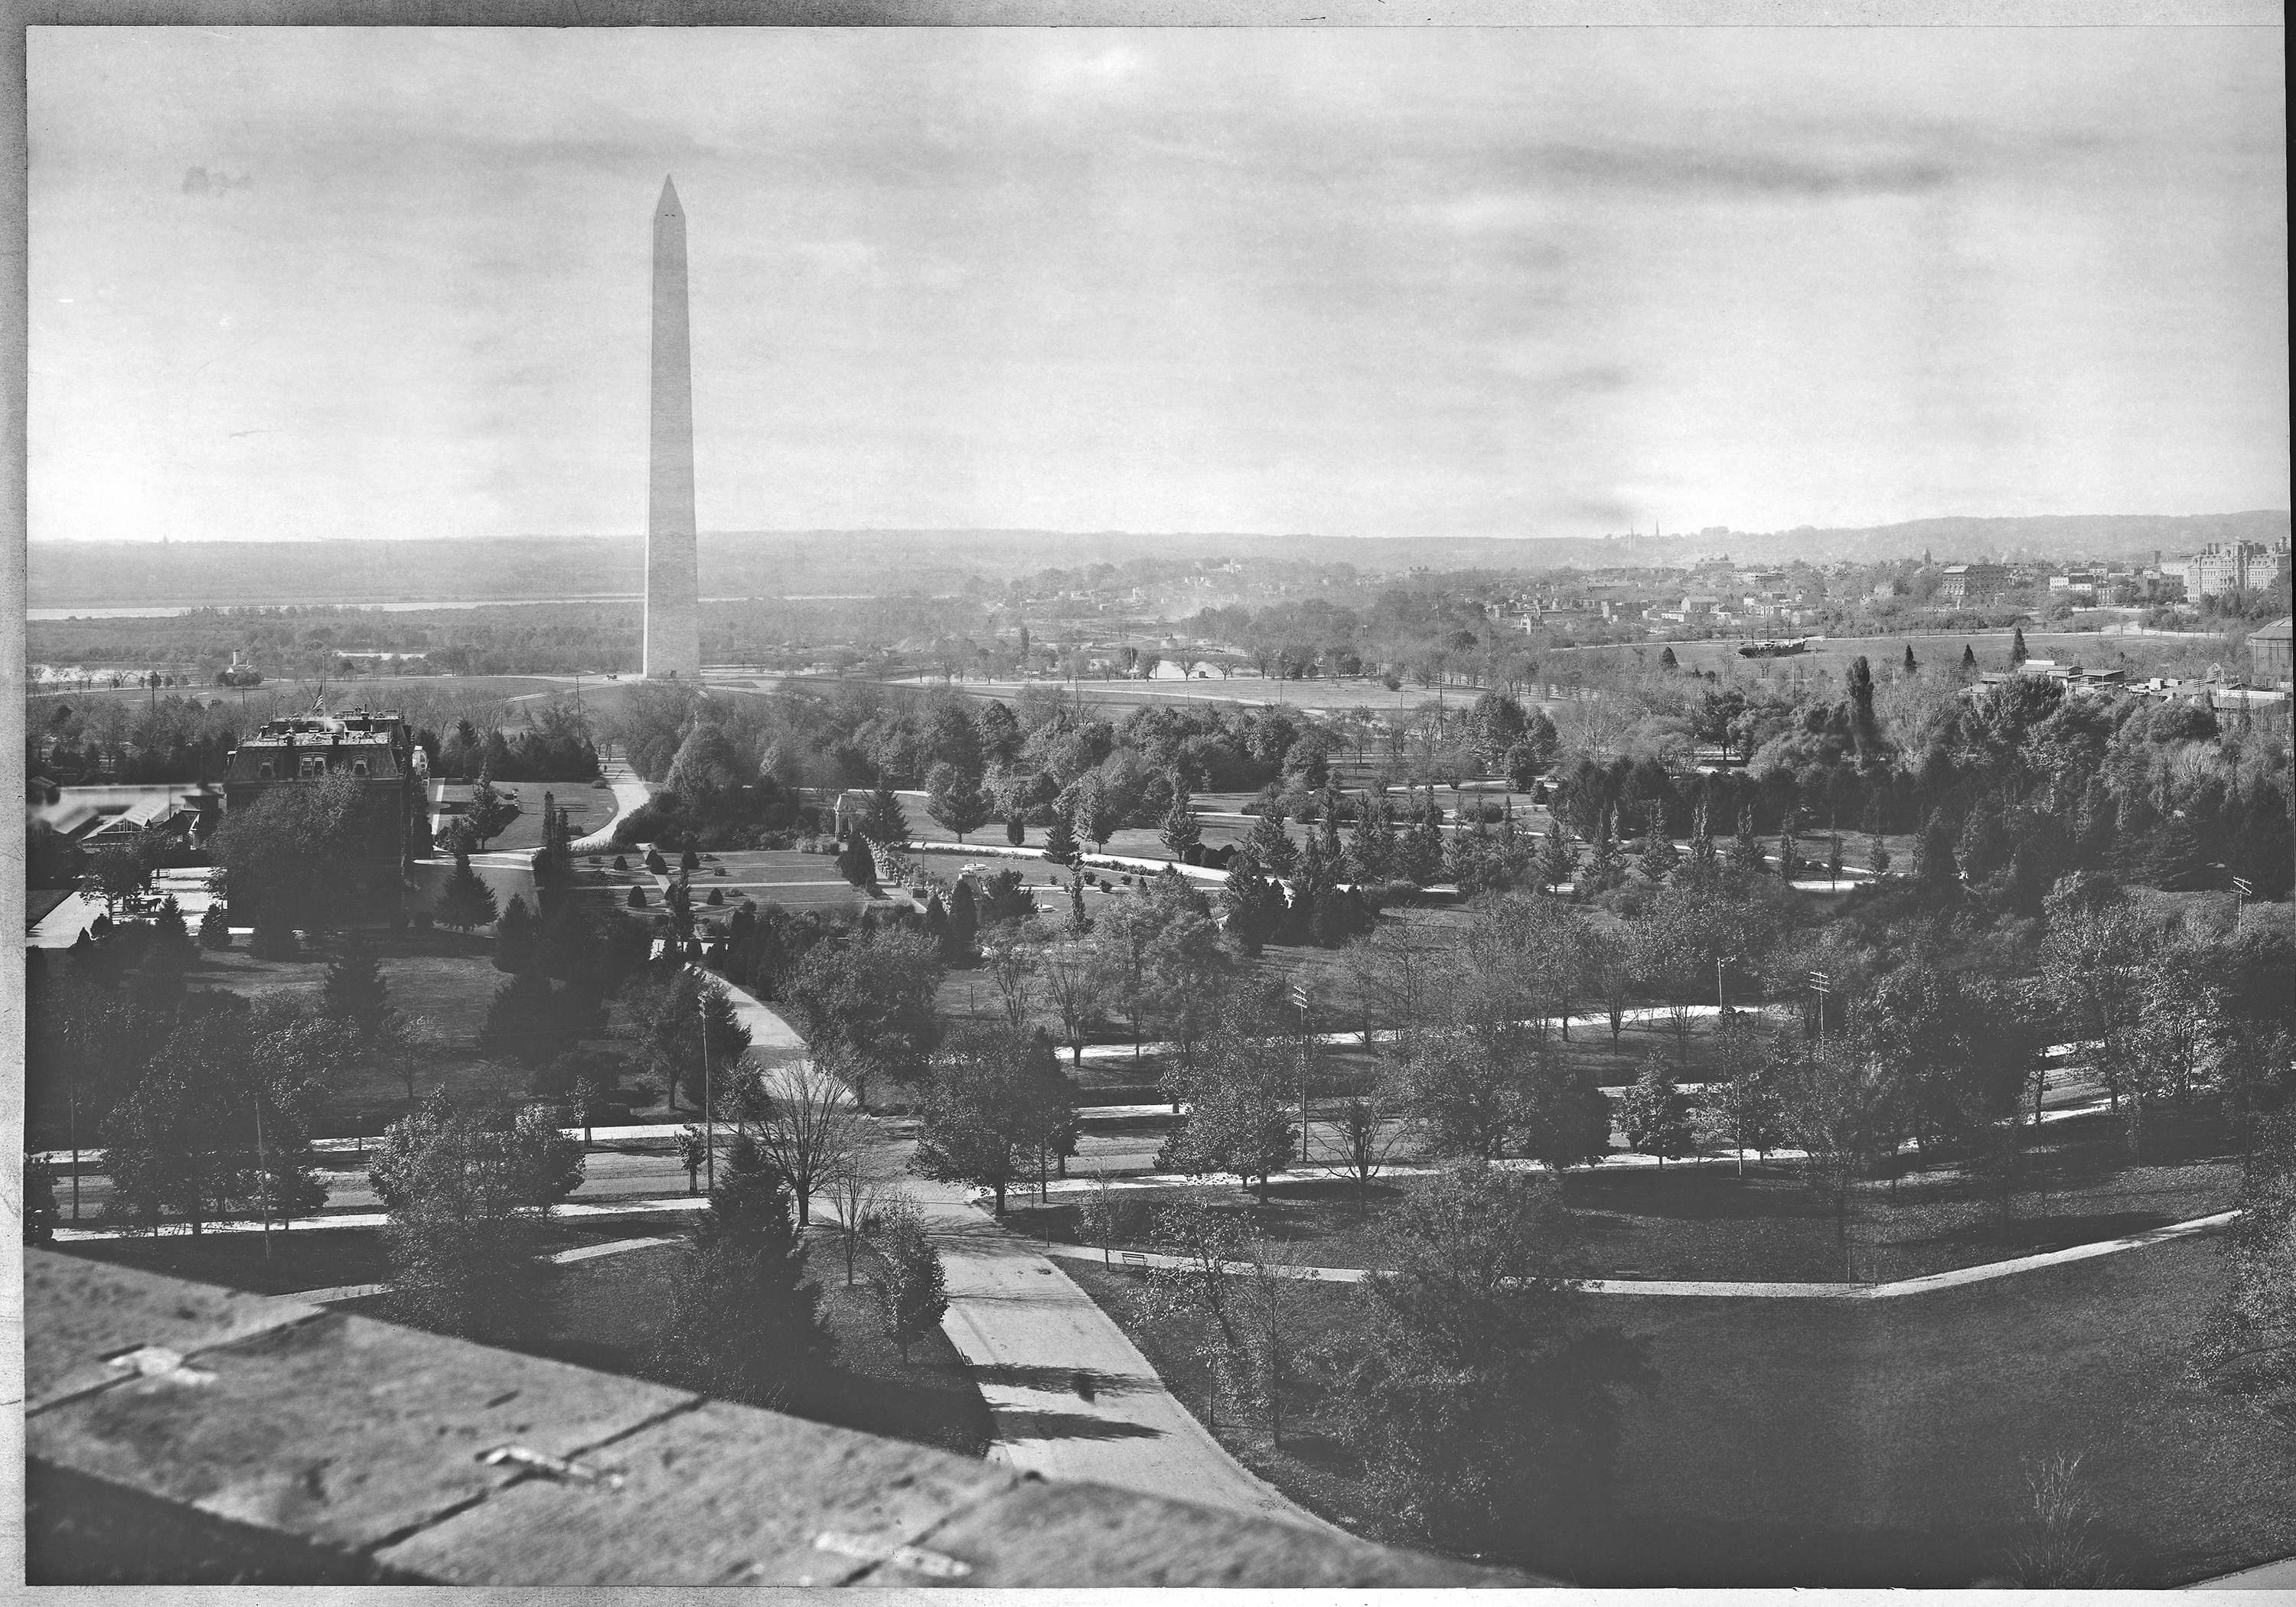 Panoramic photo of Washington, D.C.